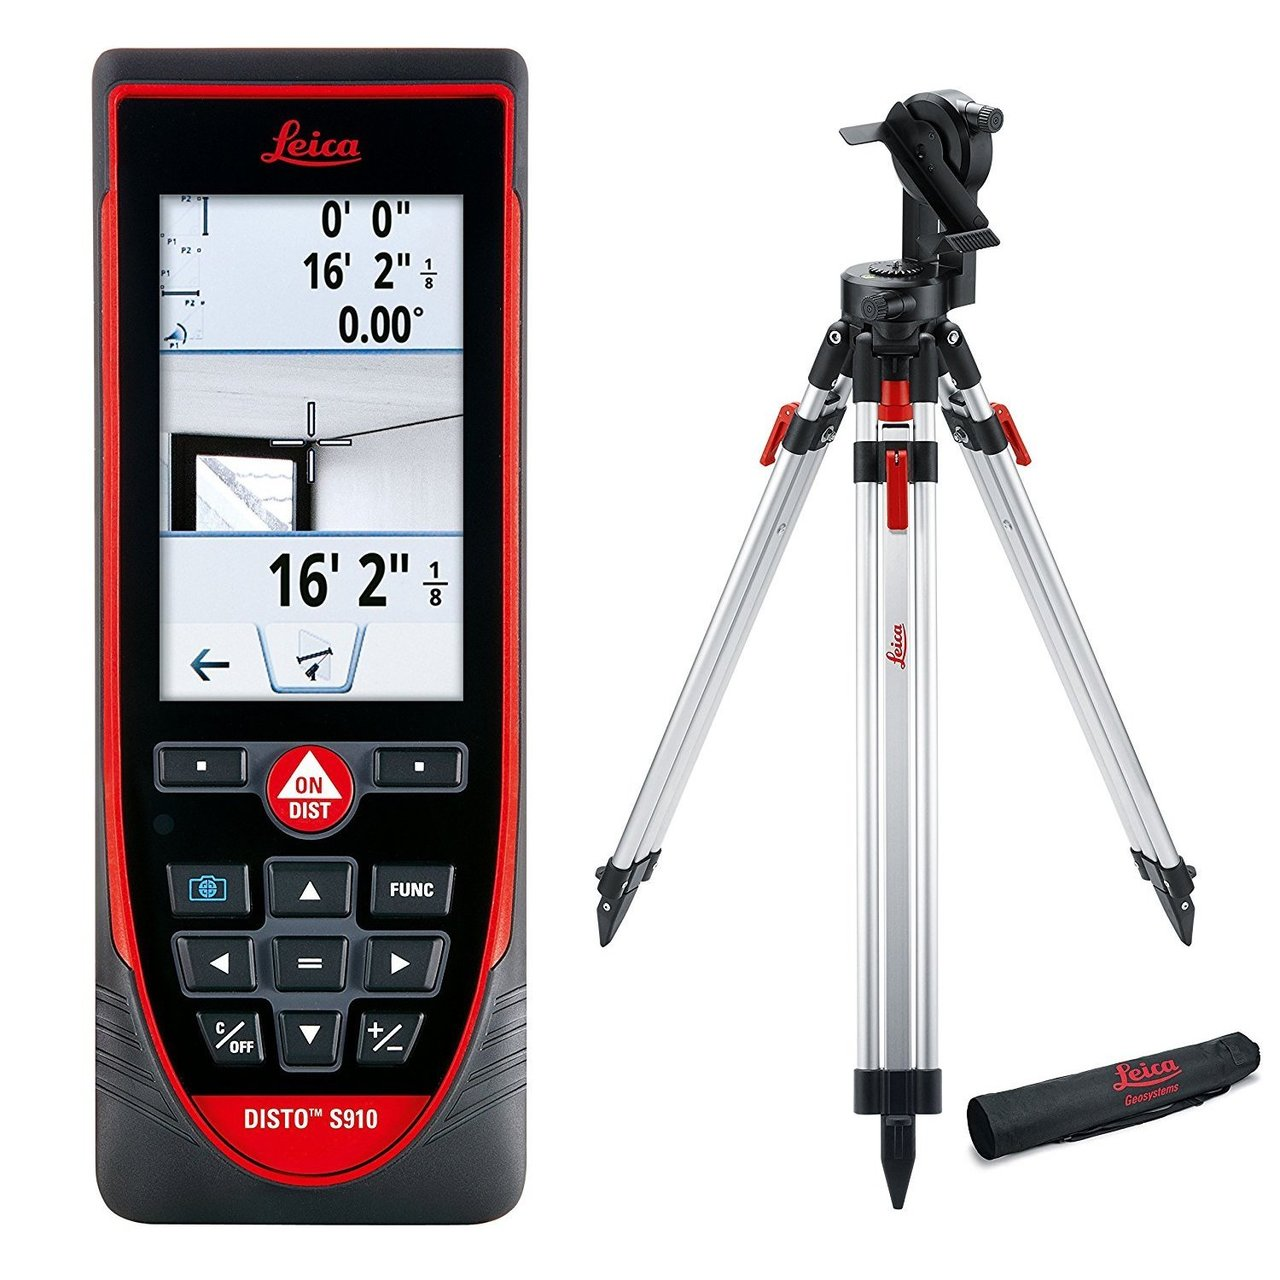 Leica DISTO S910 Exterior Package